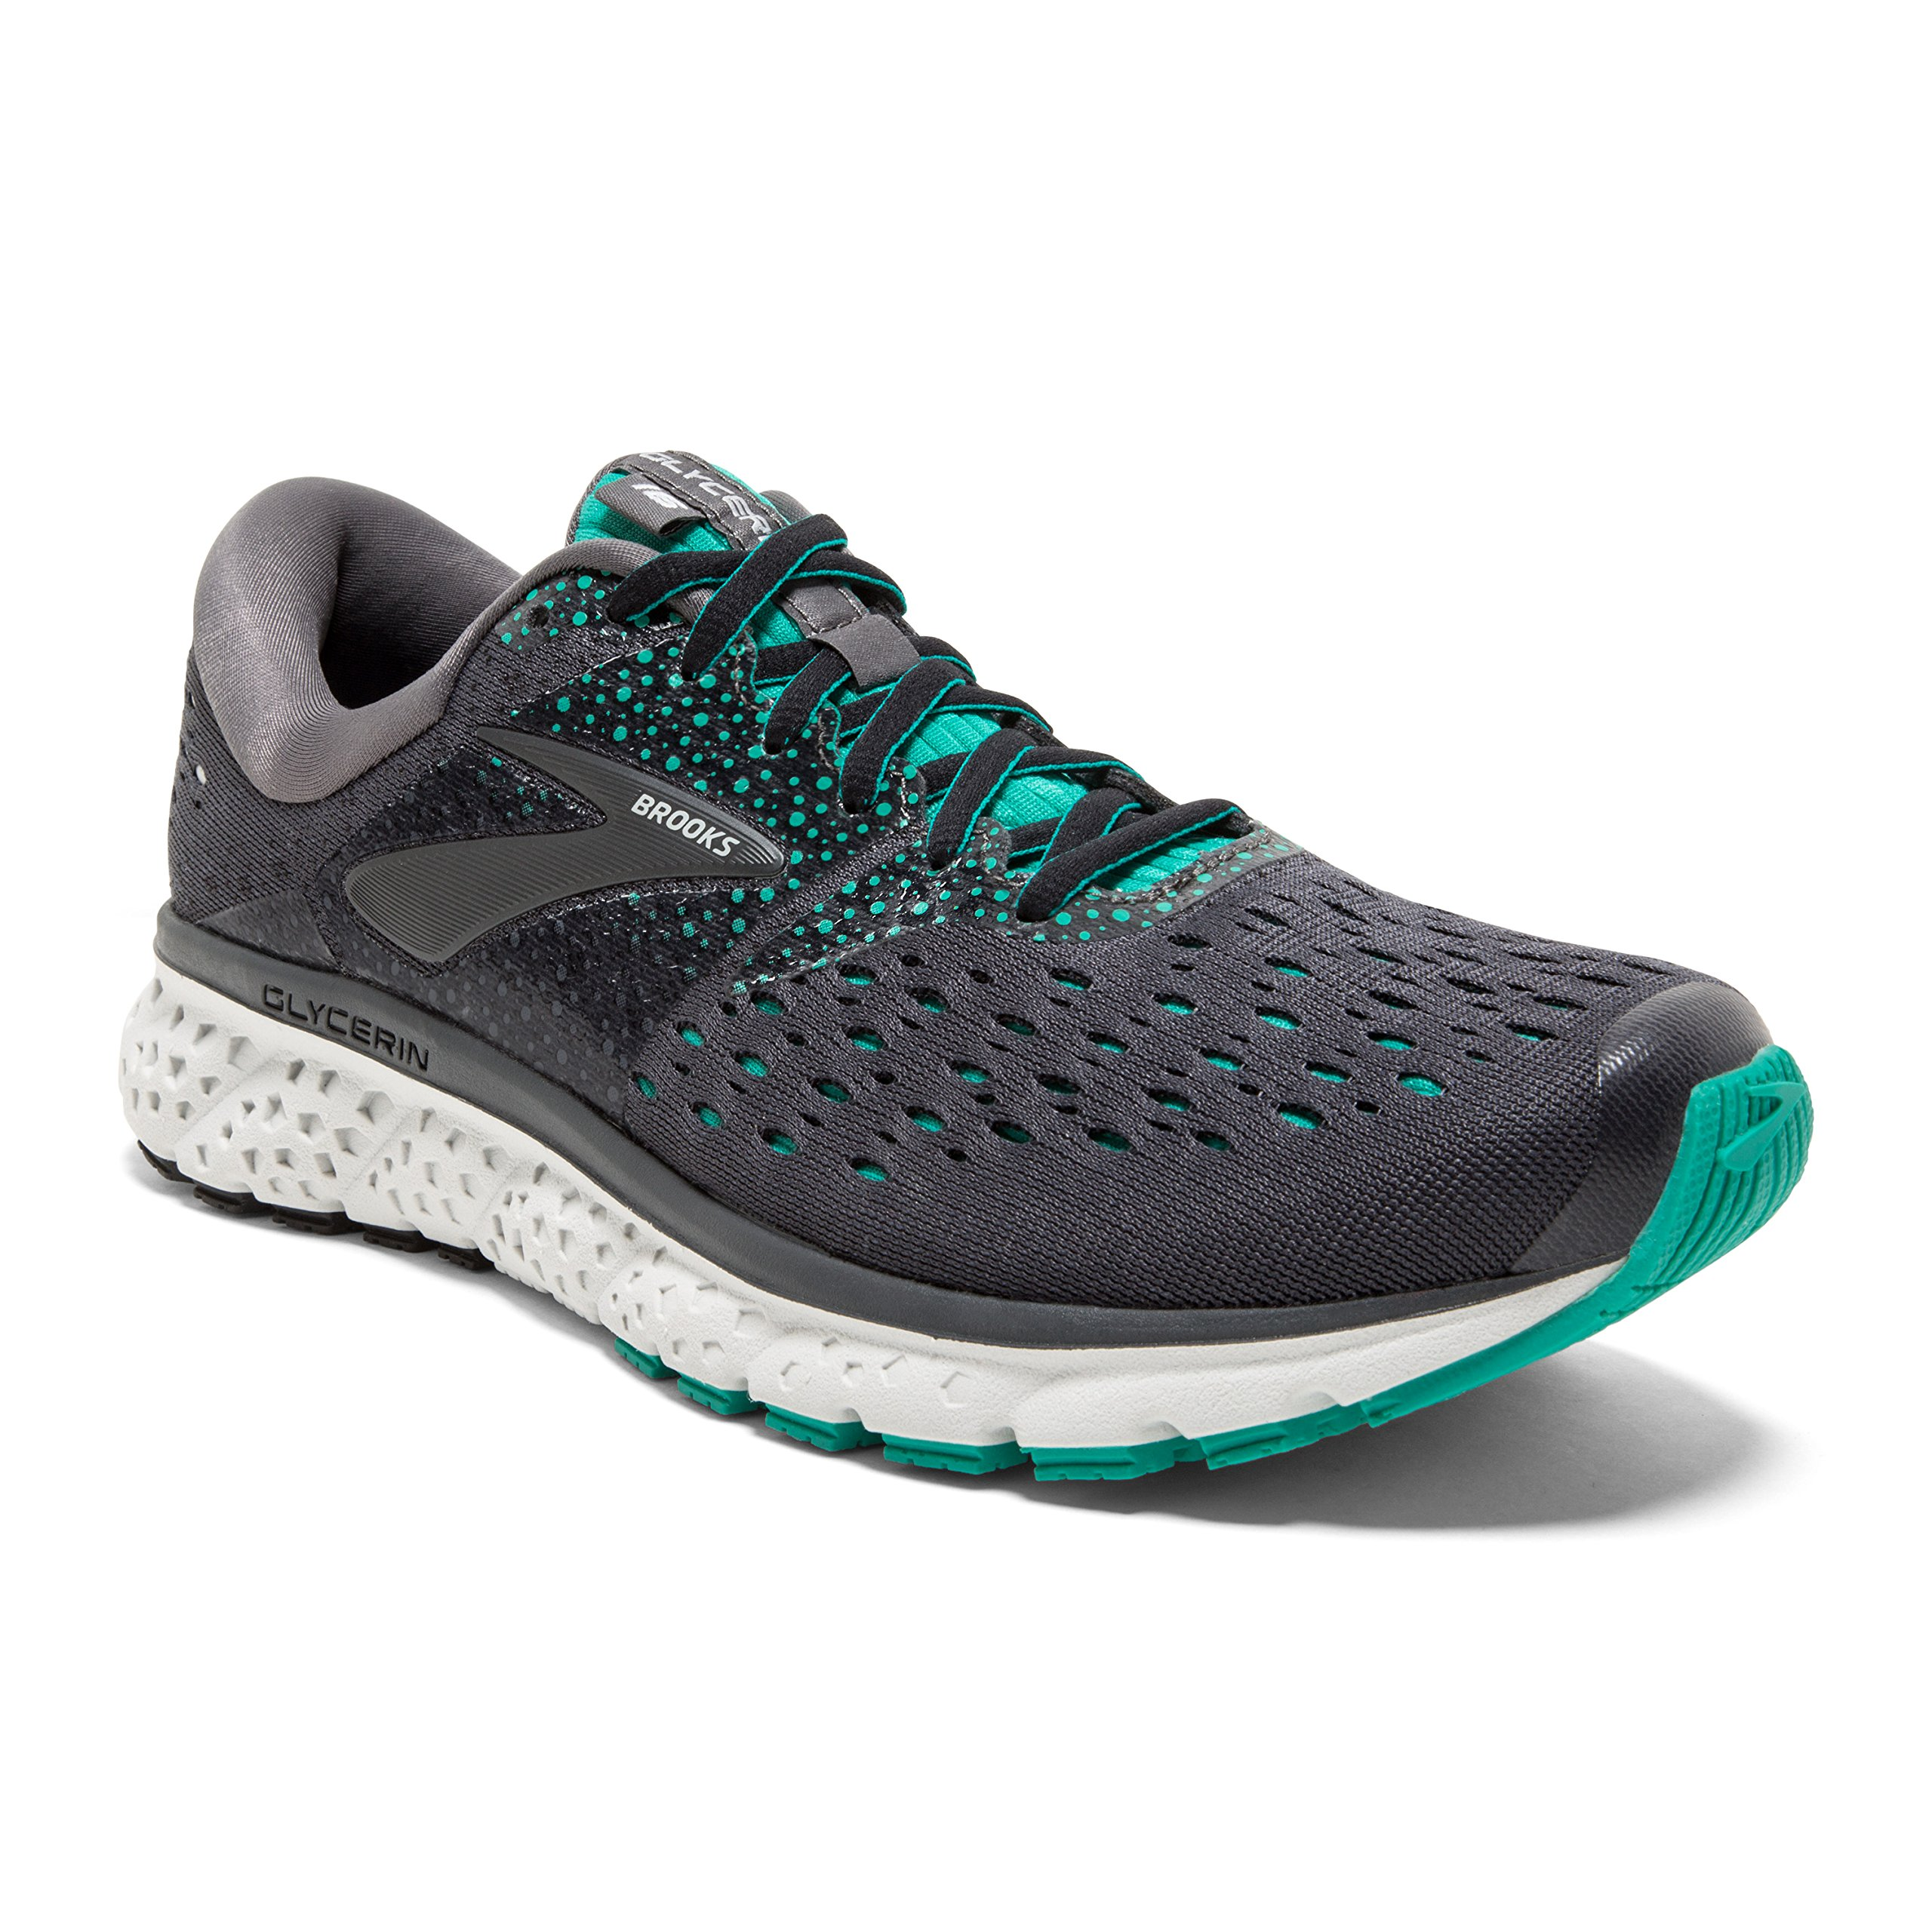 Brooks Womens Glycerin 16 - Ebony/Green/Black - B - 12.0 by Brooks